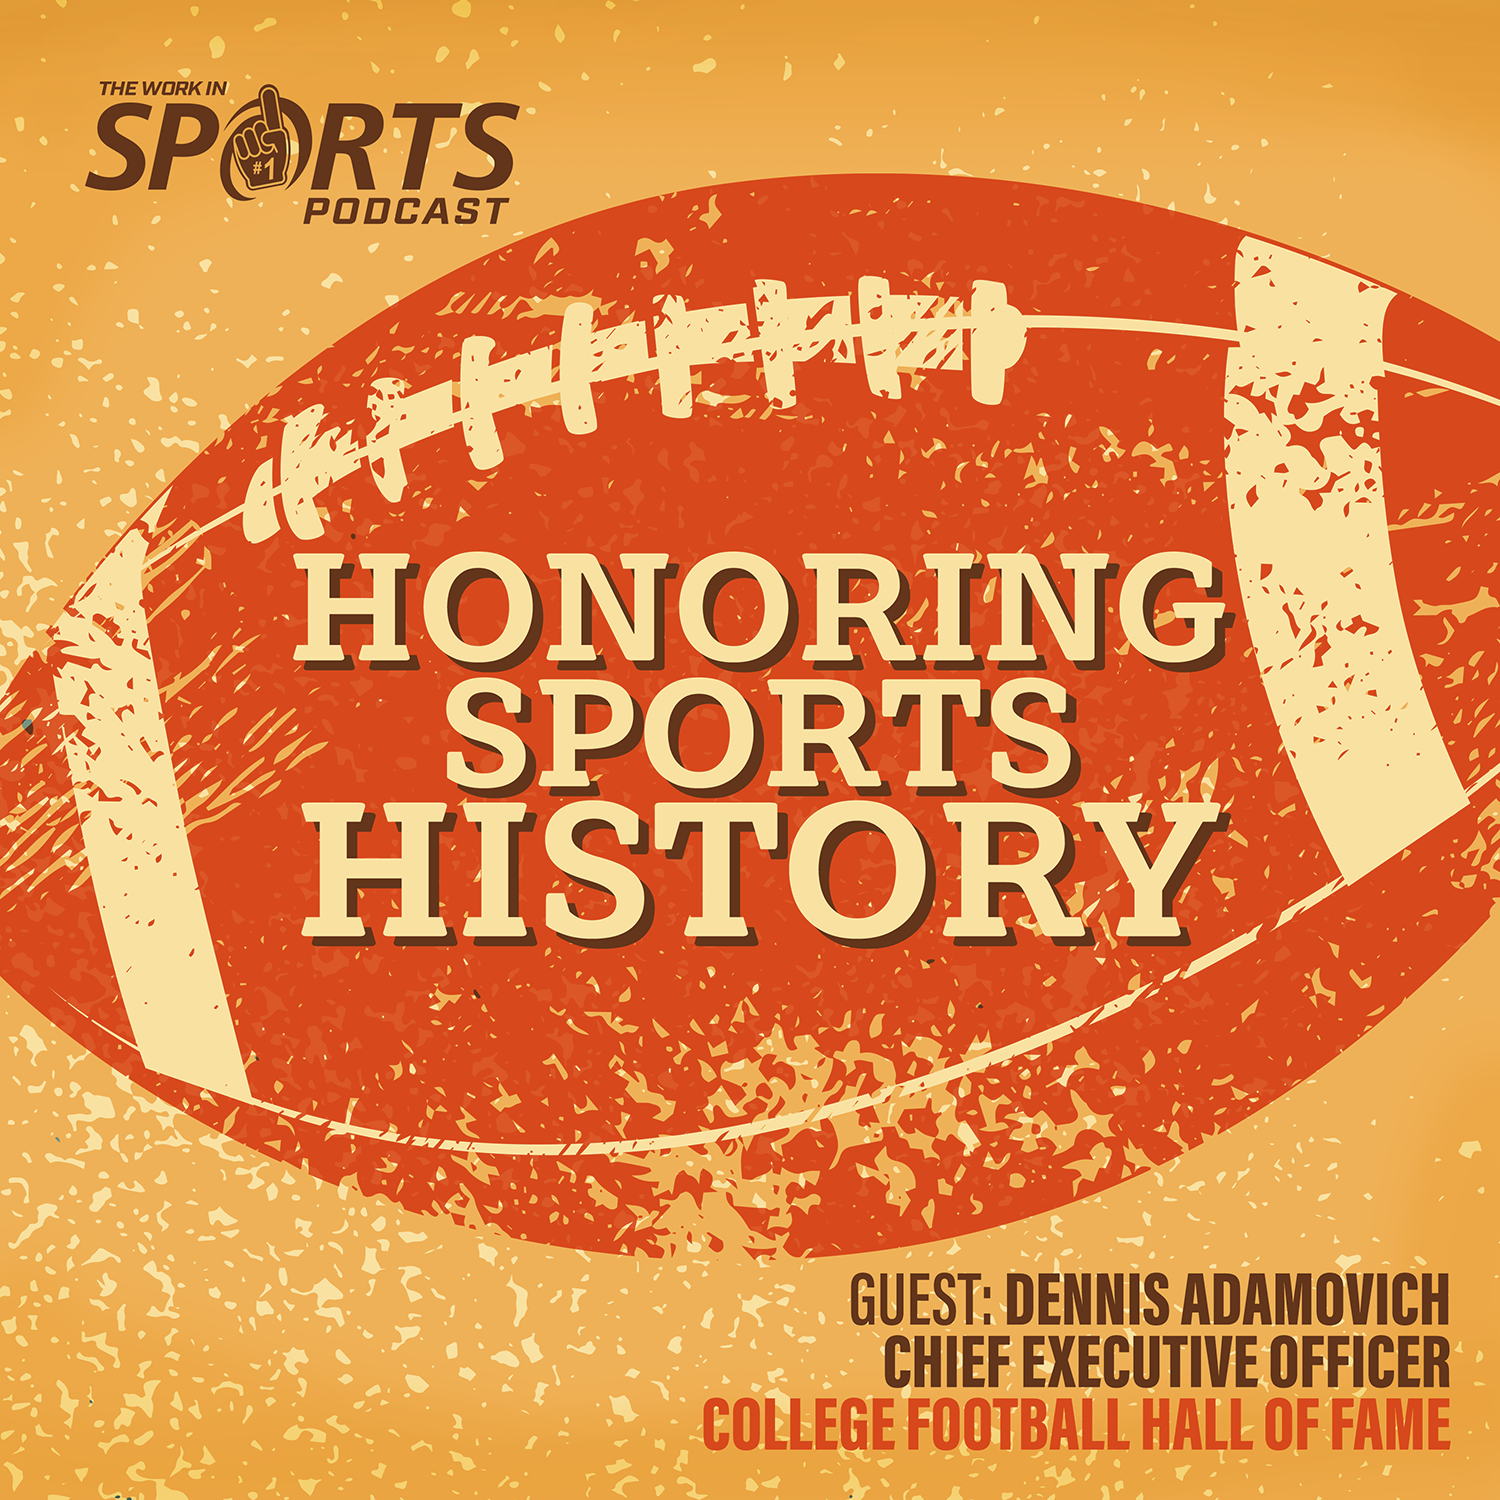 Dennis Adamovich college football hall of fame ceo